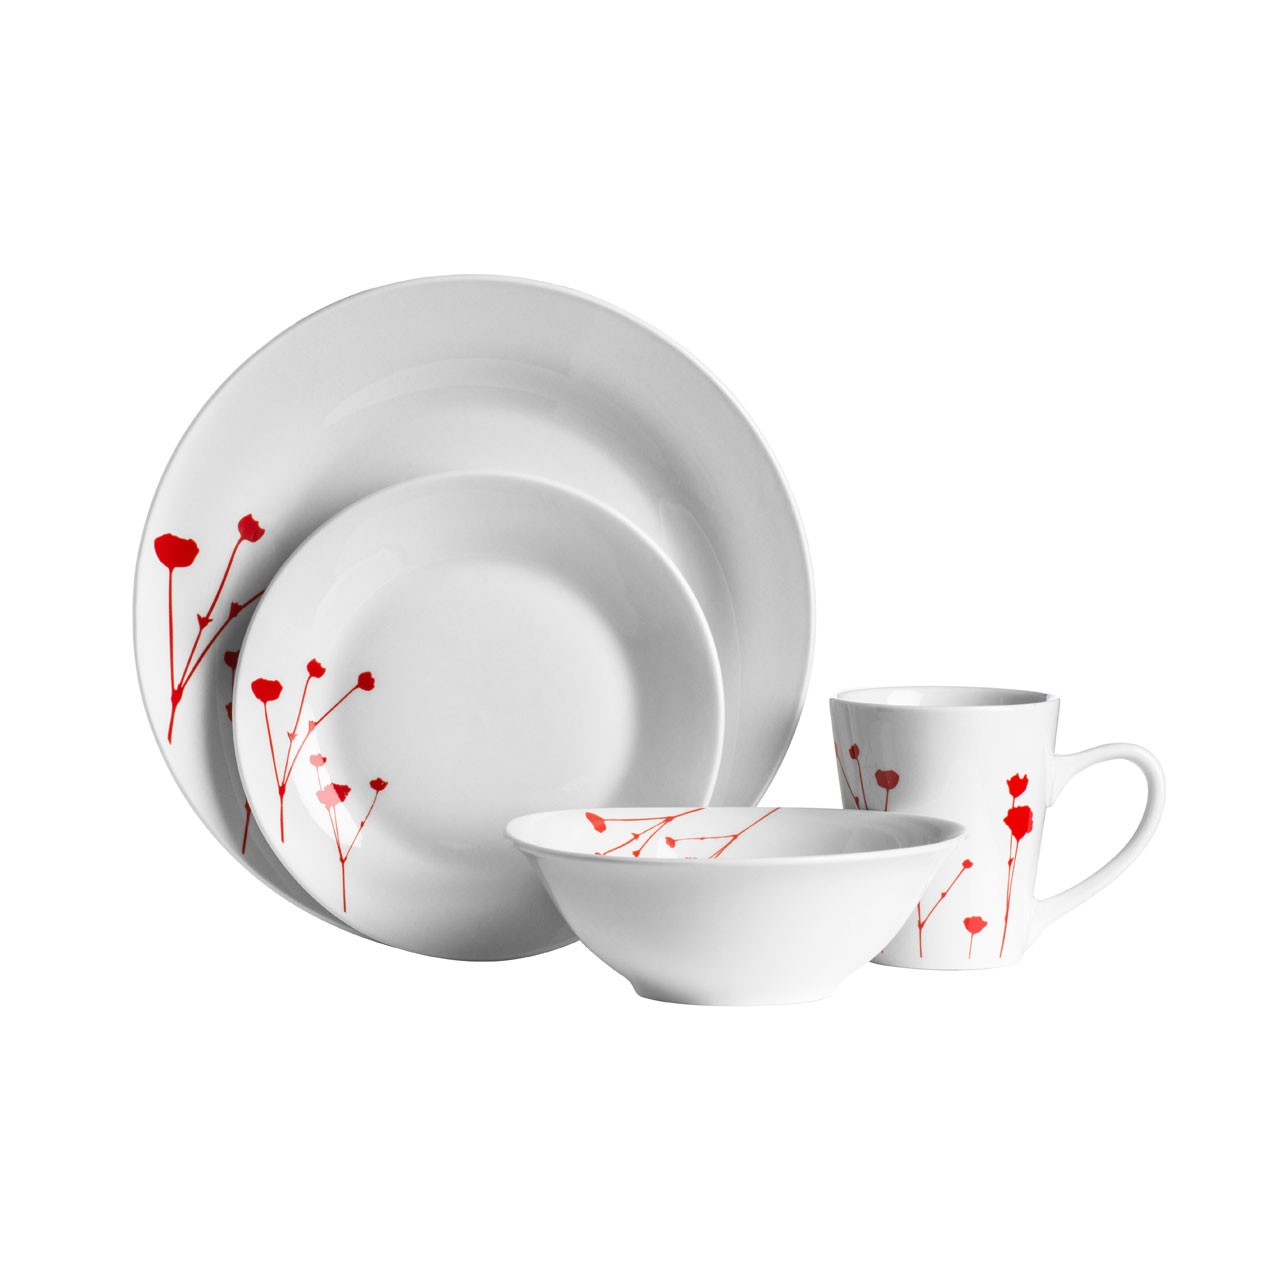 16 Piece Wild Flower Porcelain Dinner Set